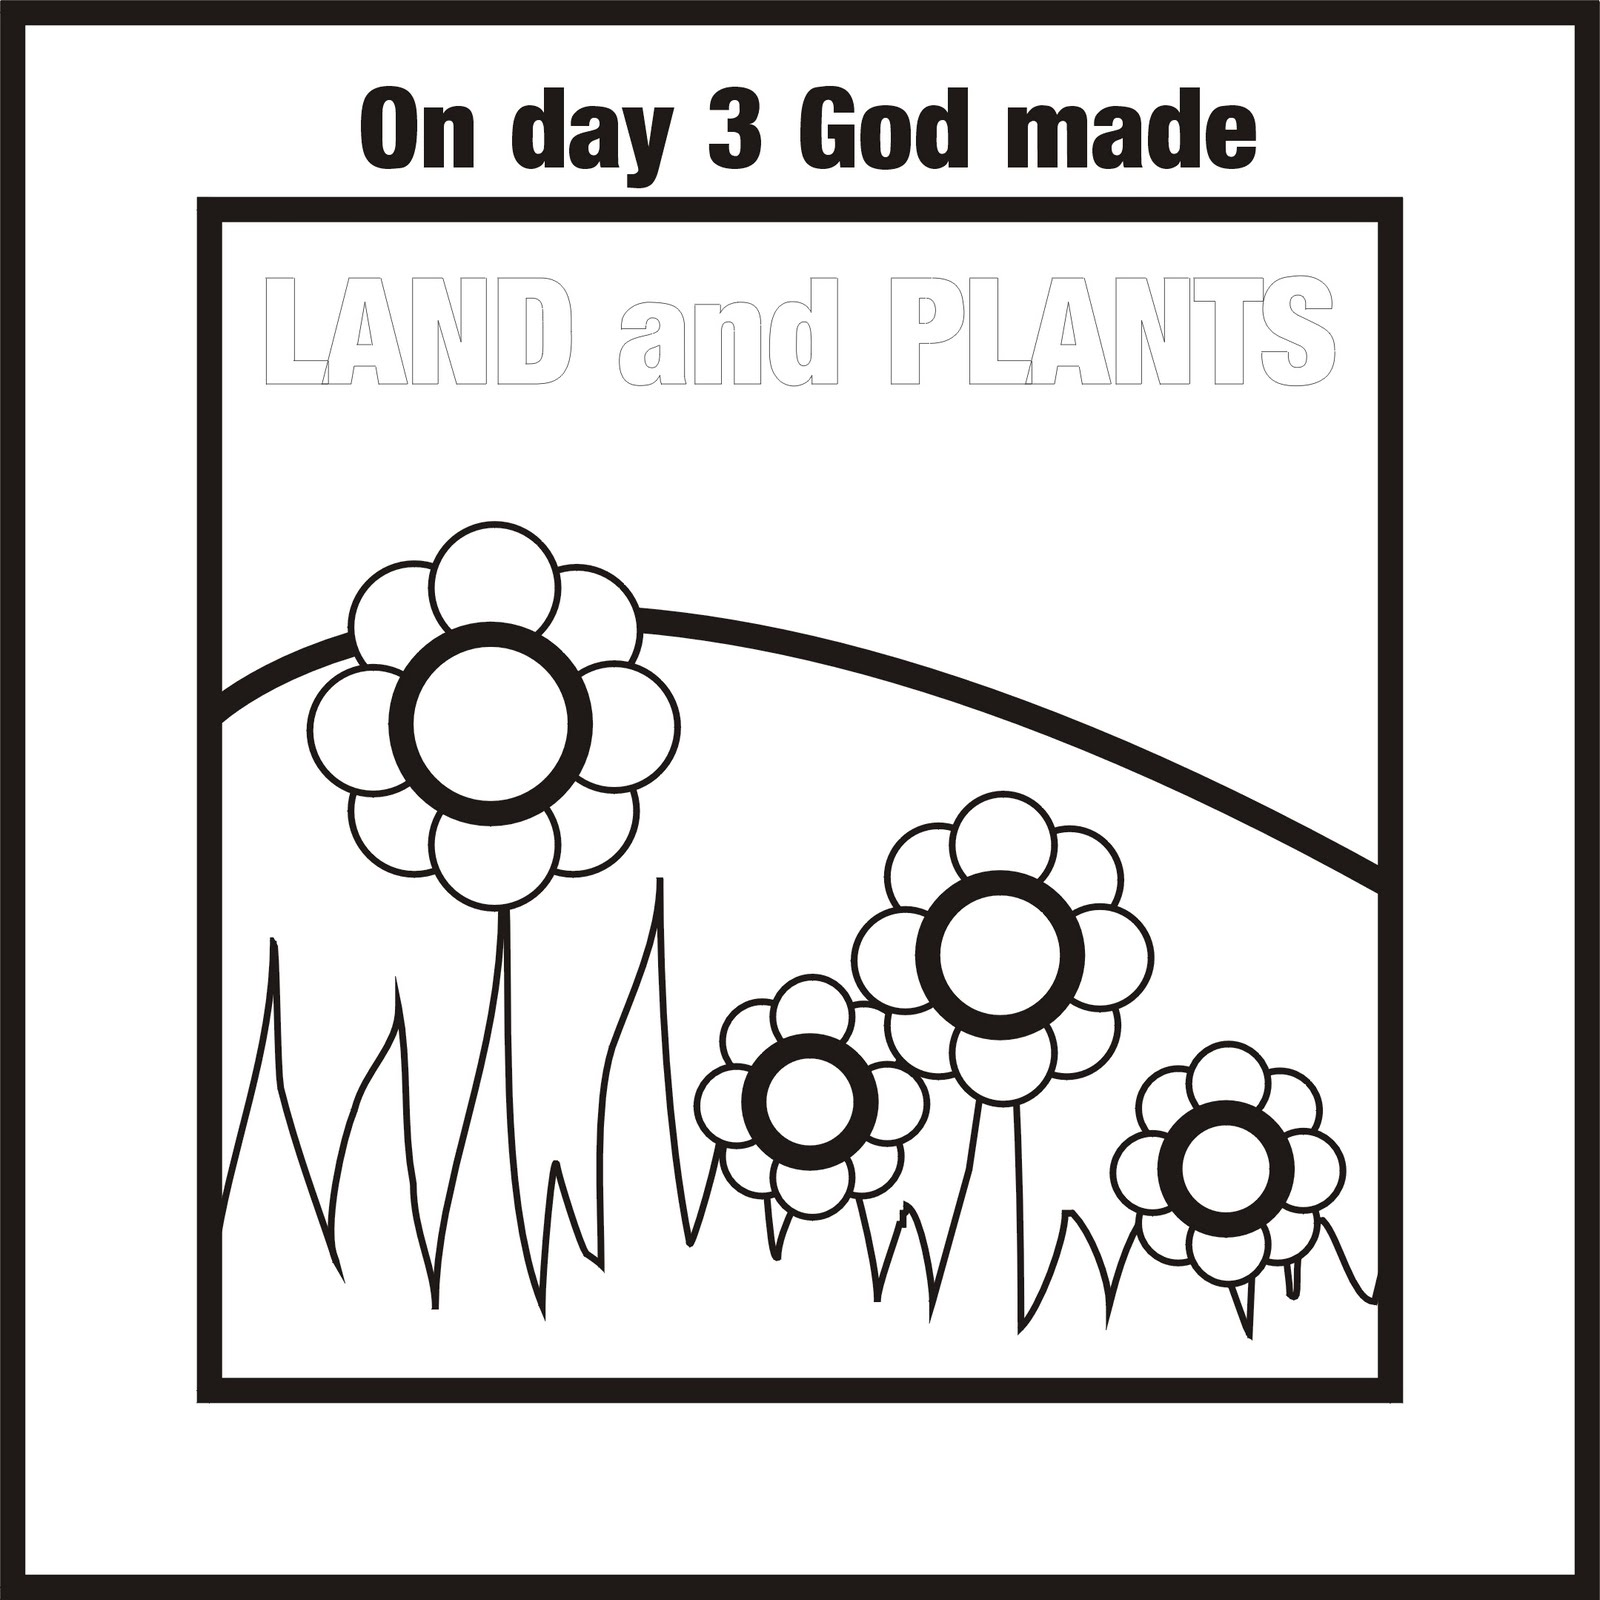 Days Of Creation Coloring Pages  RedCabWorcester  RedCabWorcester